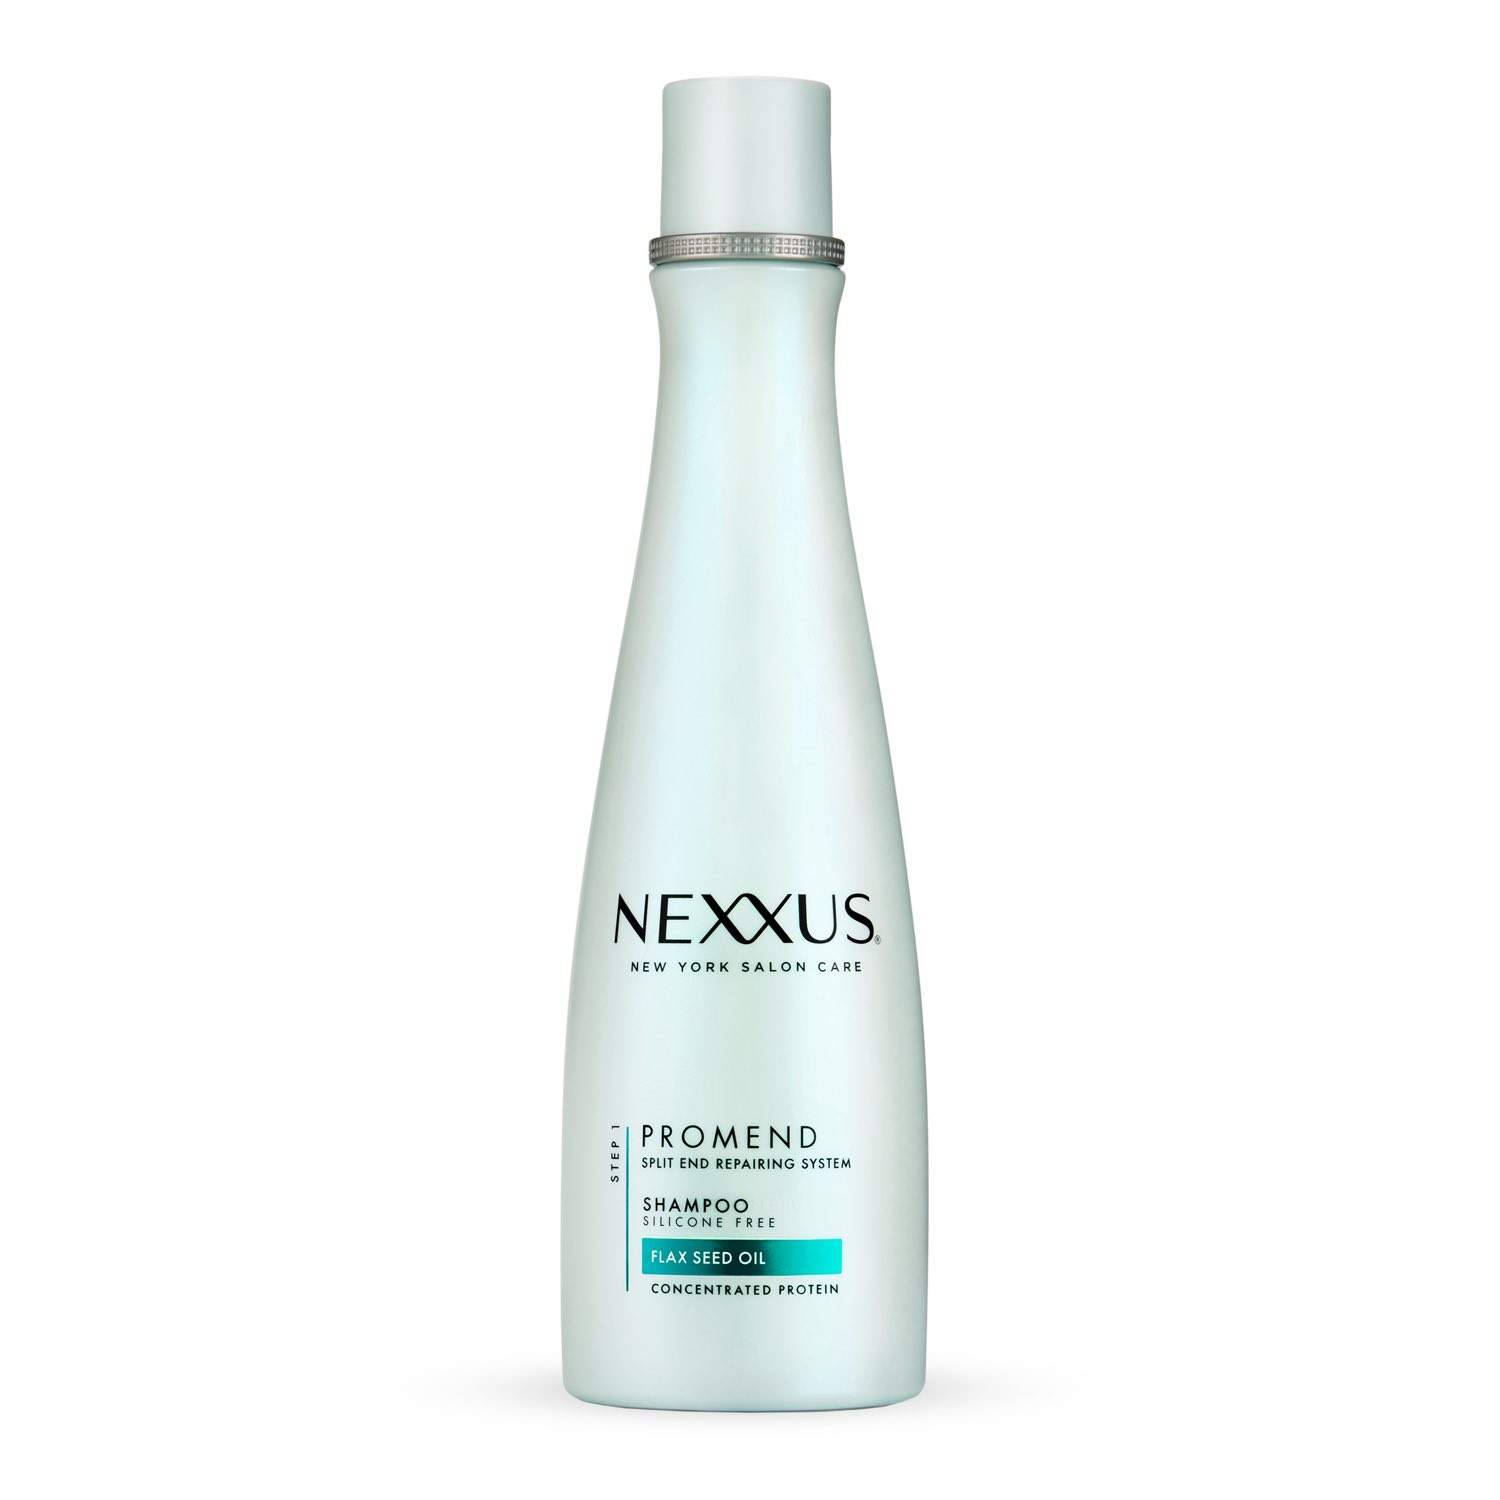 NEXXUS® PROMEND SHAMPOO FOR HAIR PRONE TO SPLIT ENDS